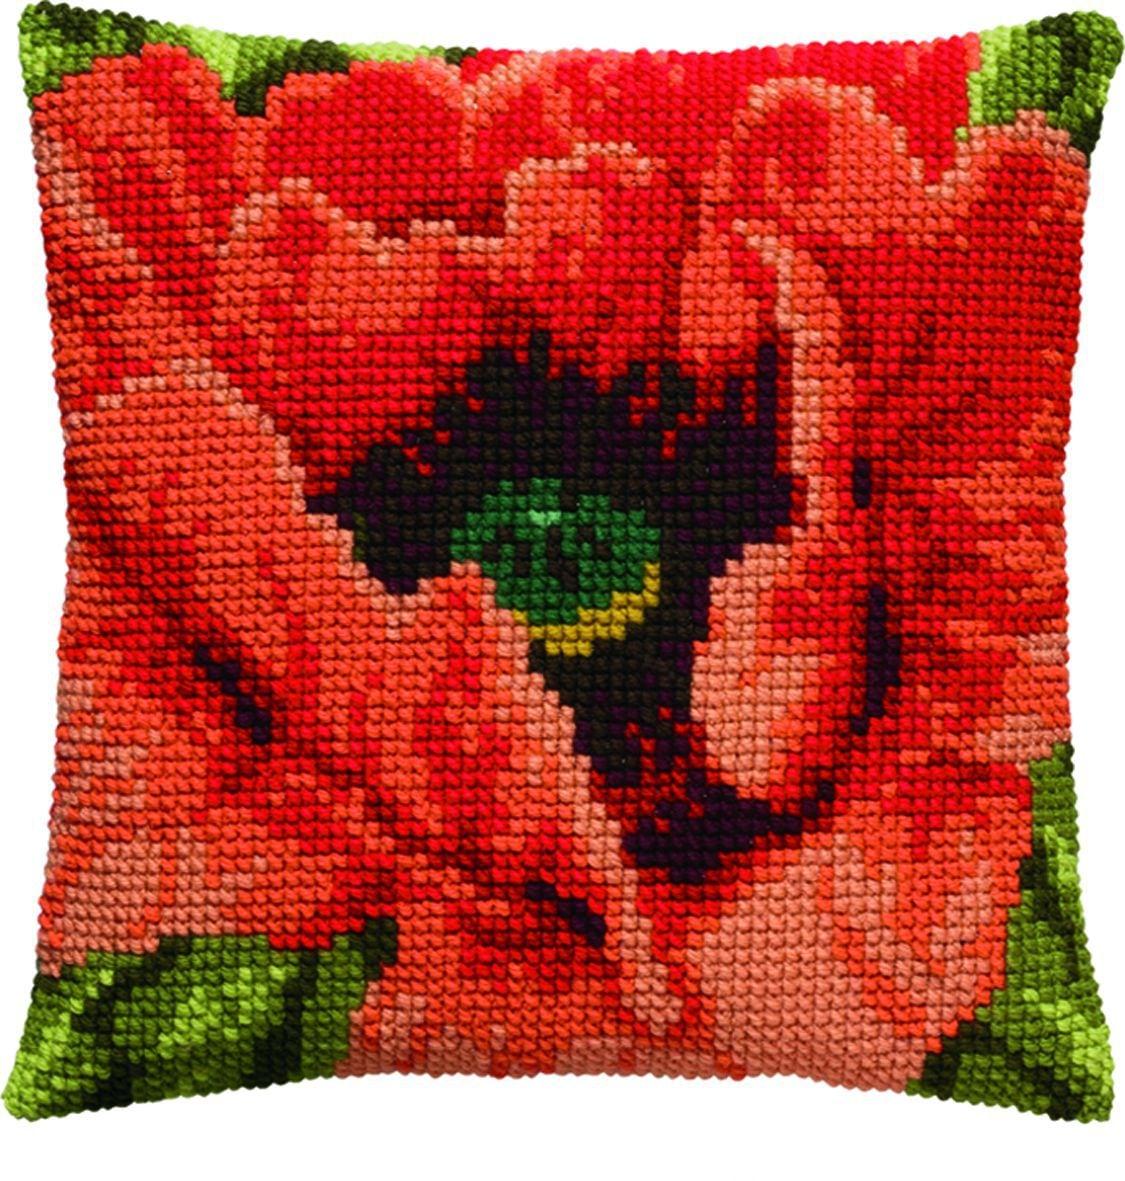 cross stitch cushion poppyprinted